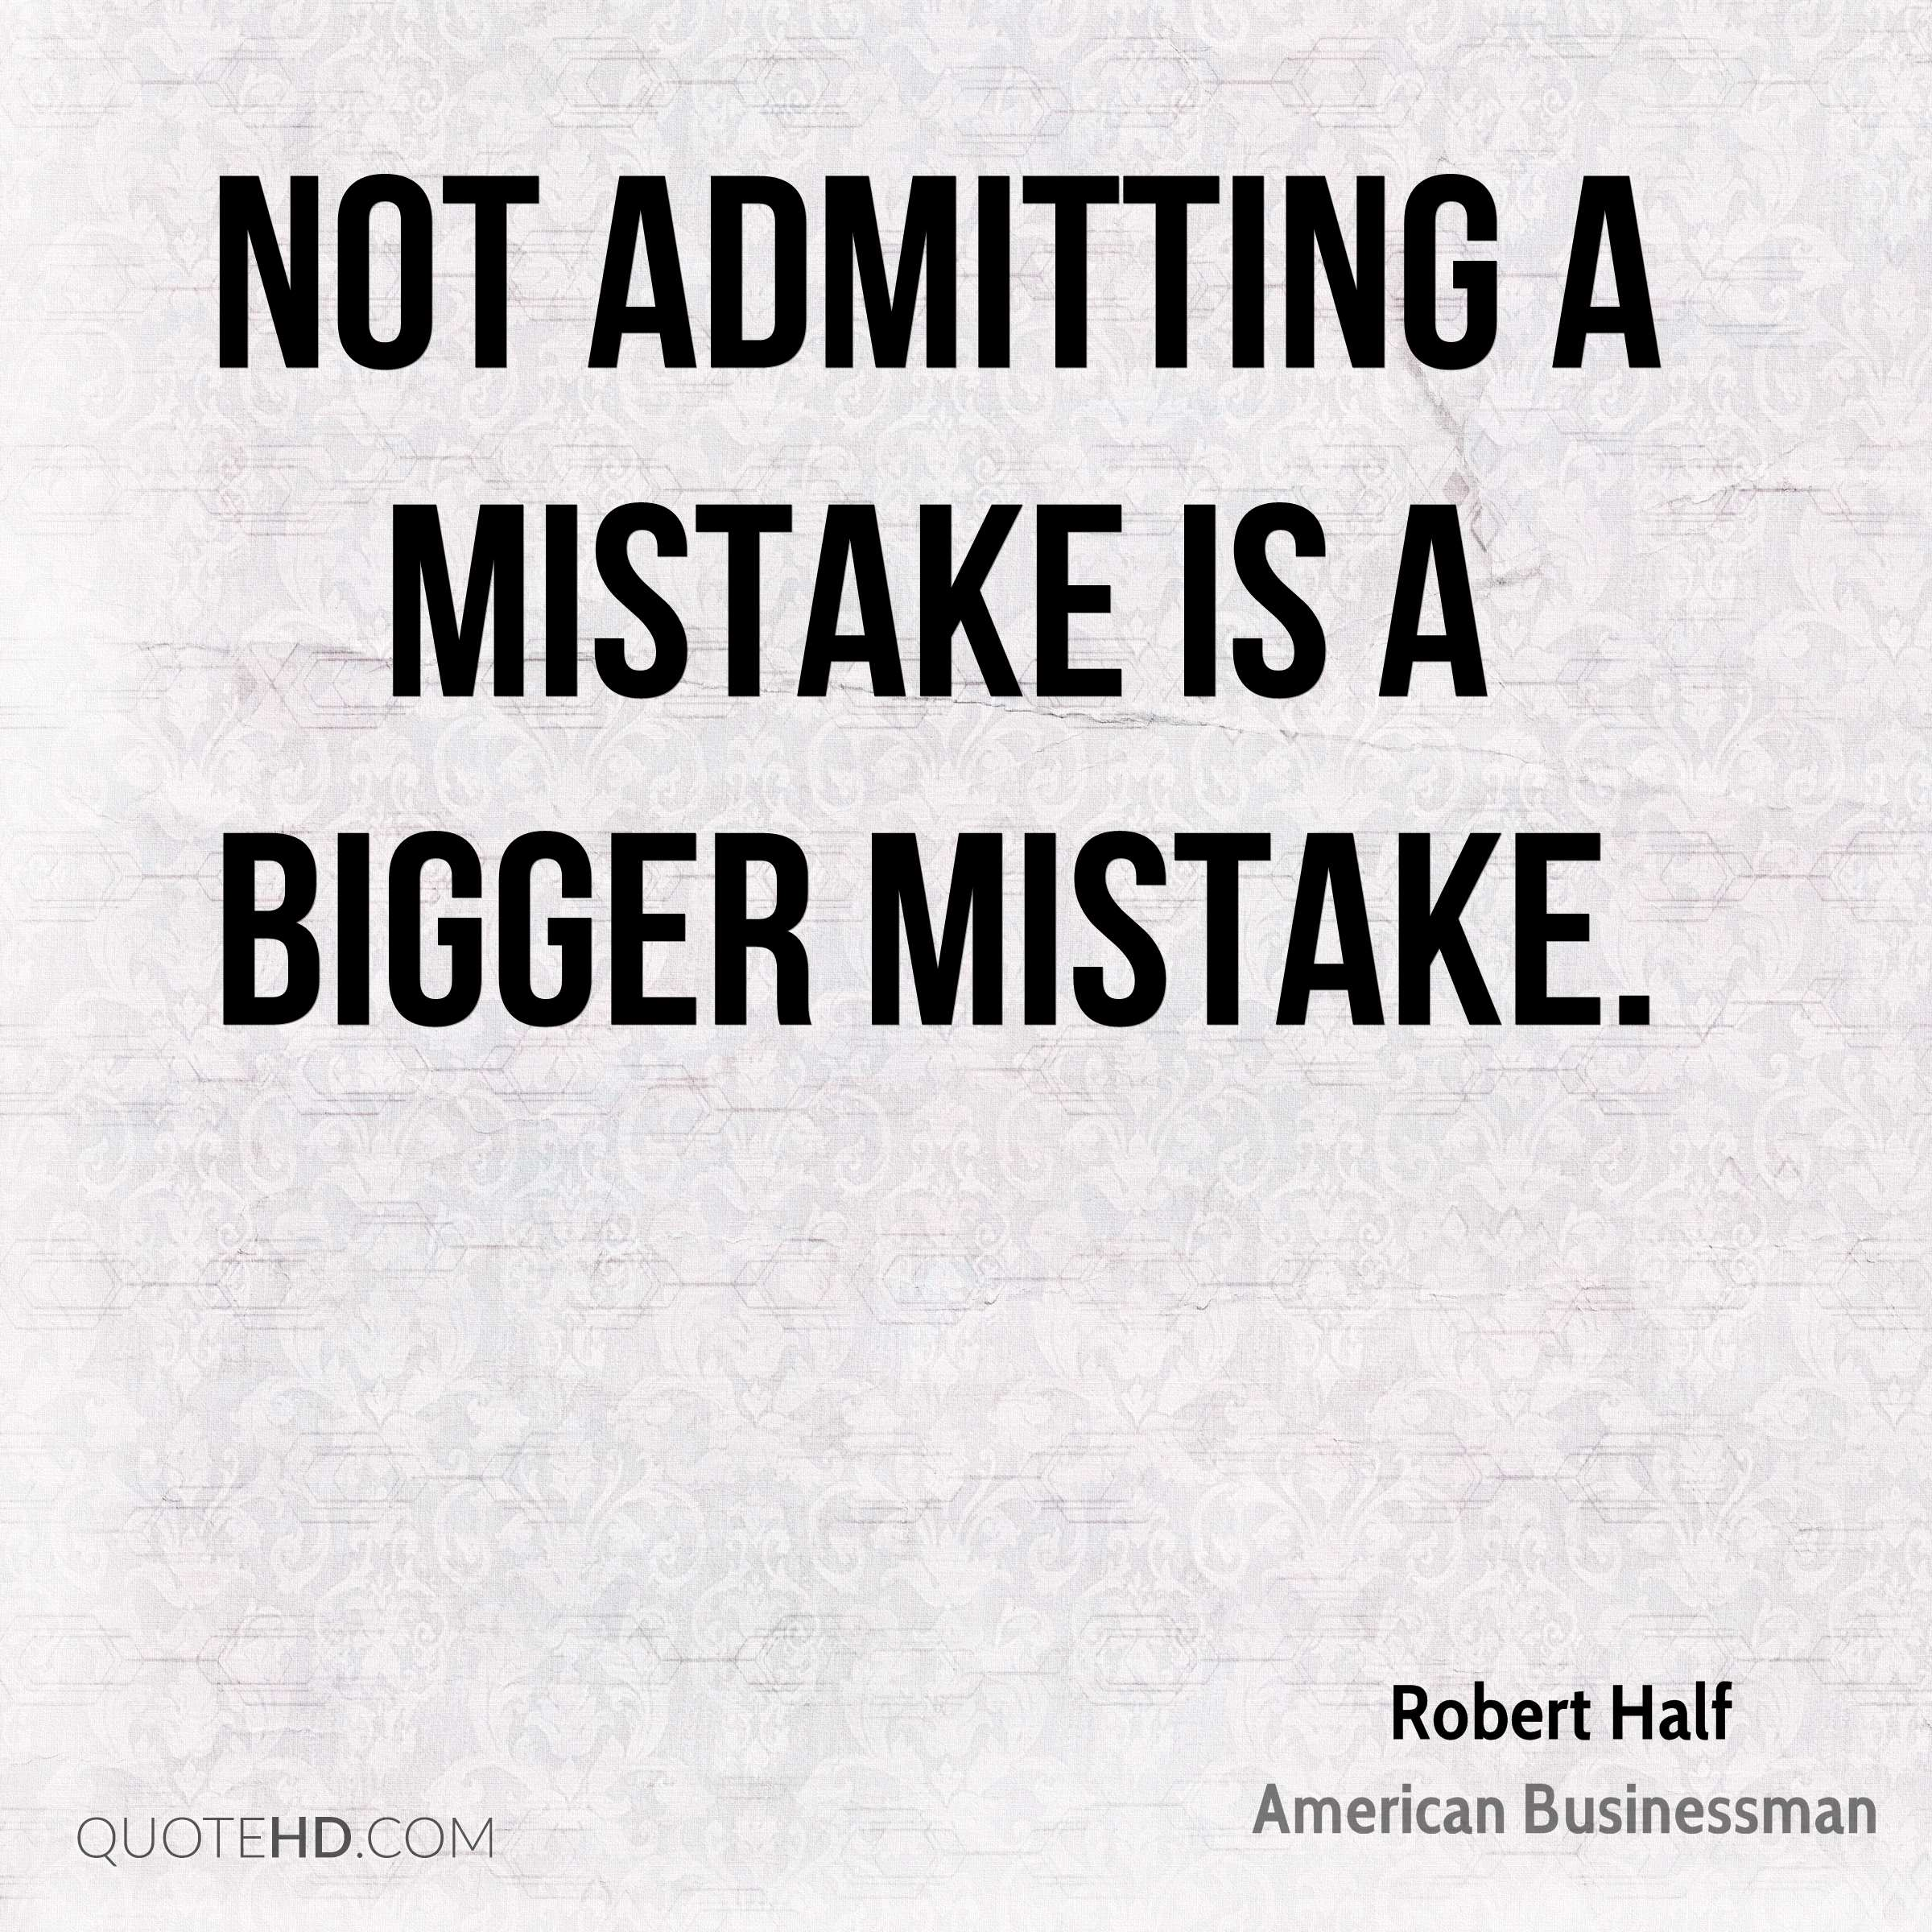 Not admitting a mistake is a bigger mistake.